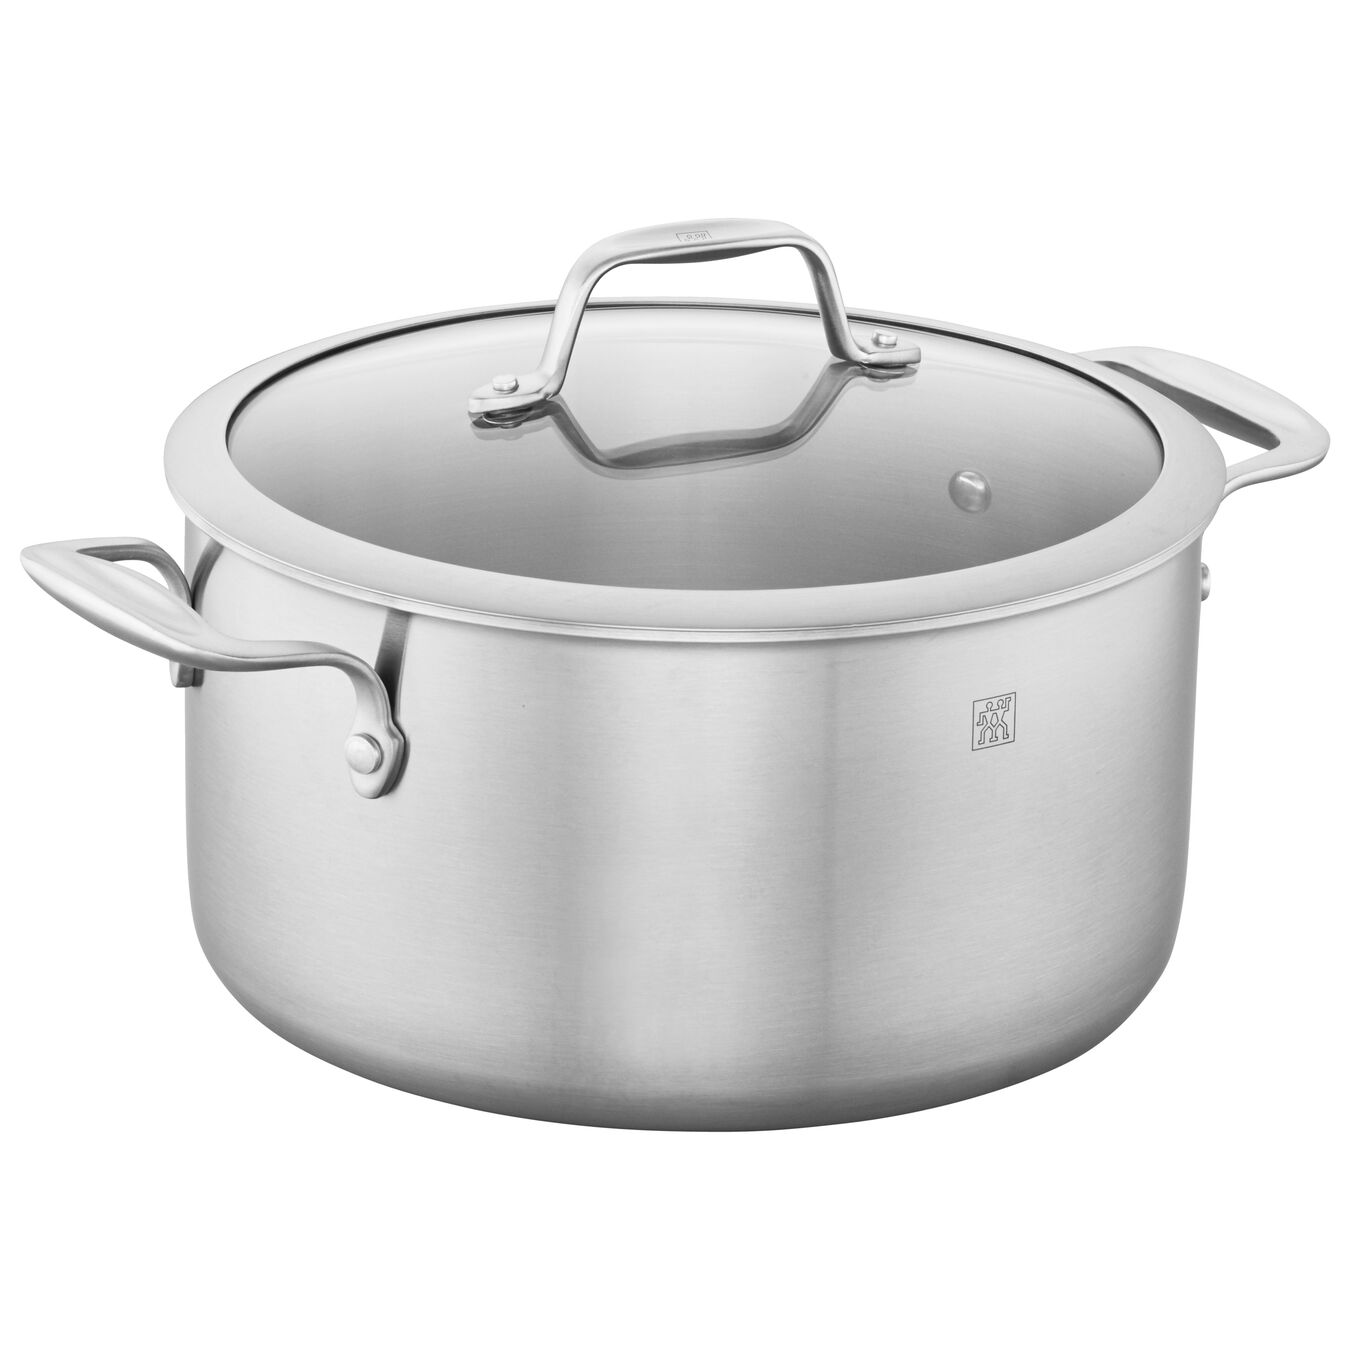 3-ply 7-pc Stainless Steel Cookware Set,,large 2